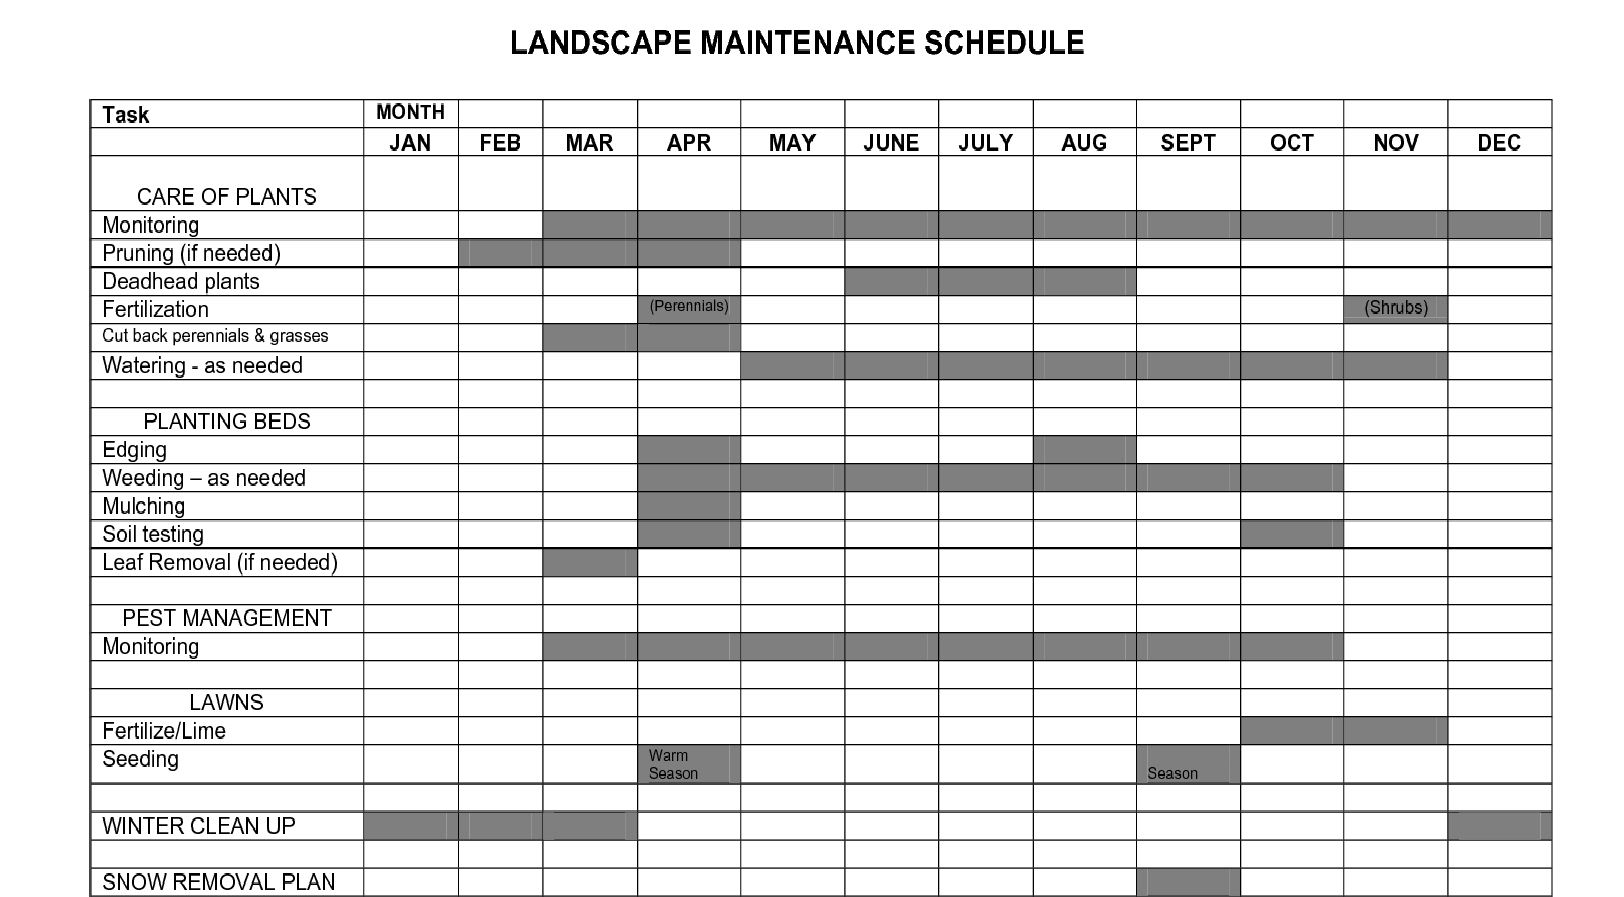 Landscape Maintenance Guidesonline Garden Design